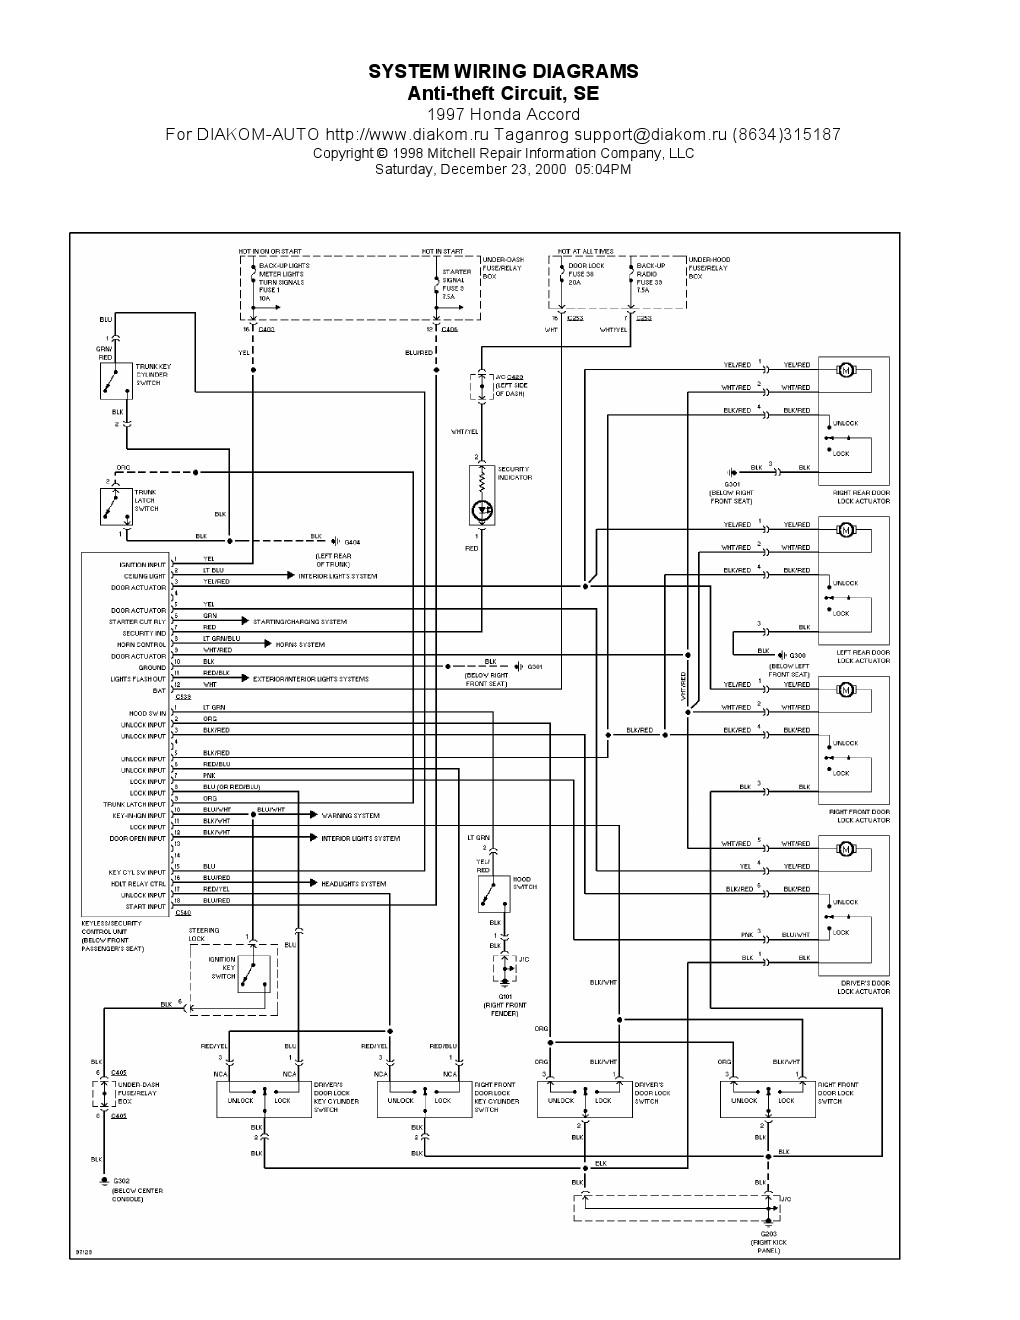 Saturn 97 Wiring Diagram Automotive Diagrams Navigation Sc1 Parts At